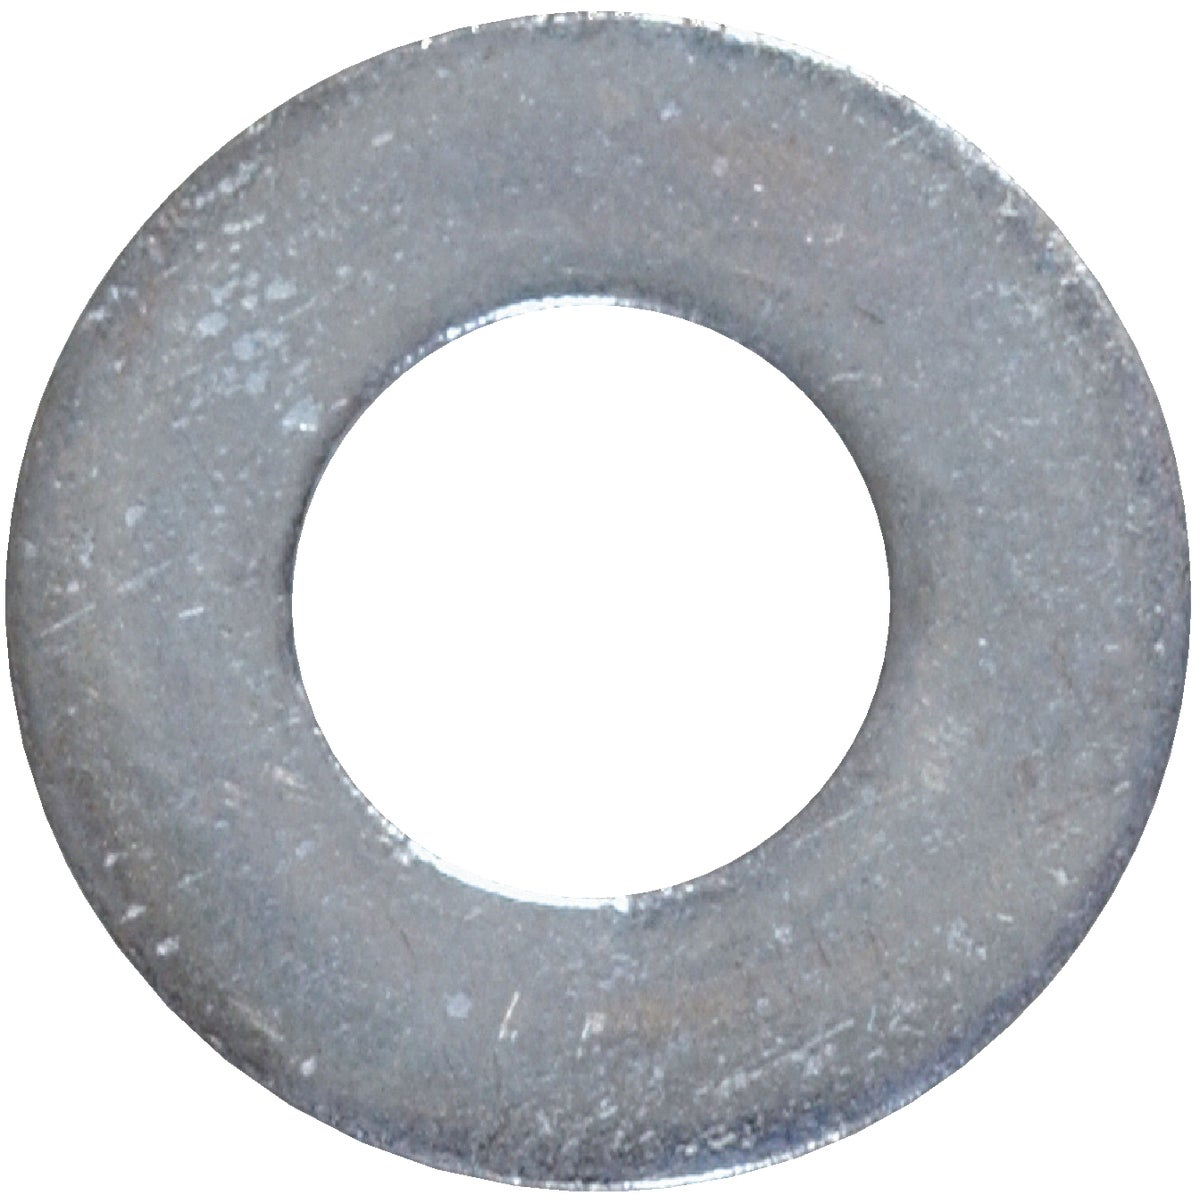 "5LB 3/8"" USS FLT WASHER"